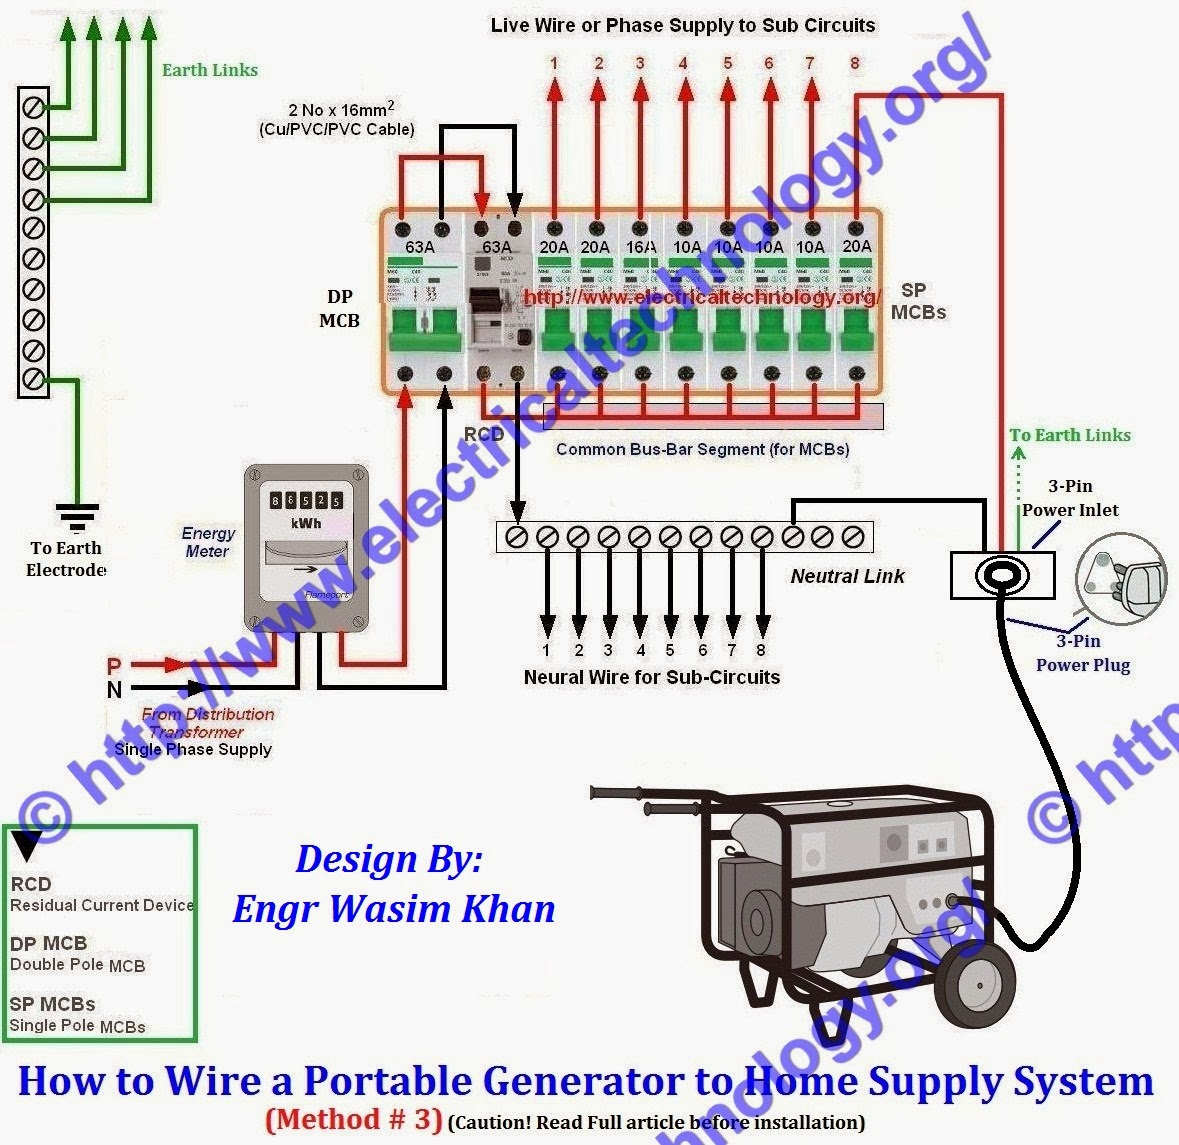 Connecting+the+Generator+to+the+3 Pin+Power+wall+socket+in+home+you+have+already+installed wiring diagrams for electrical receptacle outlets do it yourself 220 volt generator wiring diagram at creativeand.co